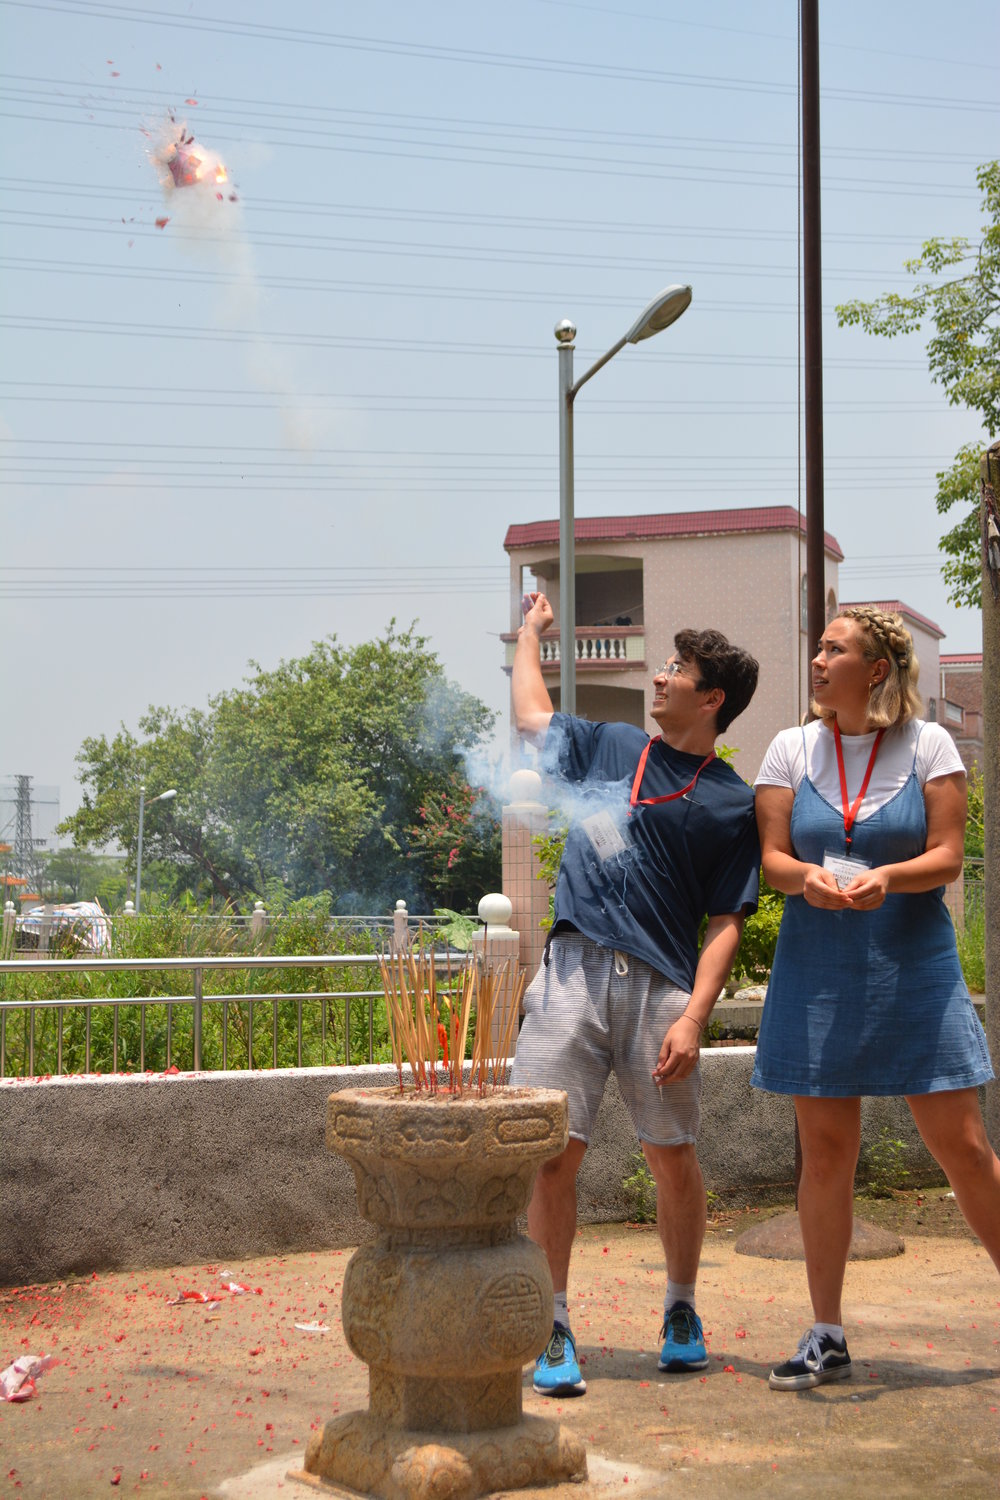 Cousins Olly Goodman and Gaby Koc-Spadaro throwing firecrackers at their grandmother's village in Sanshui